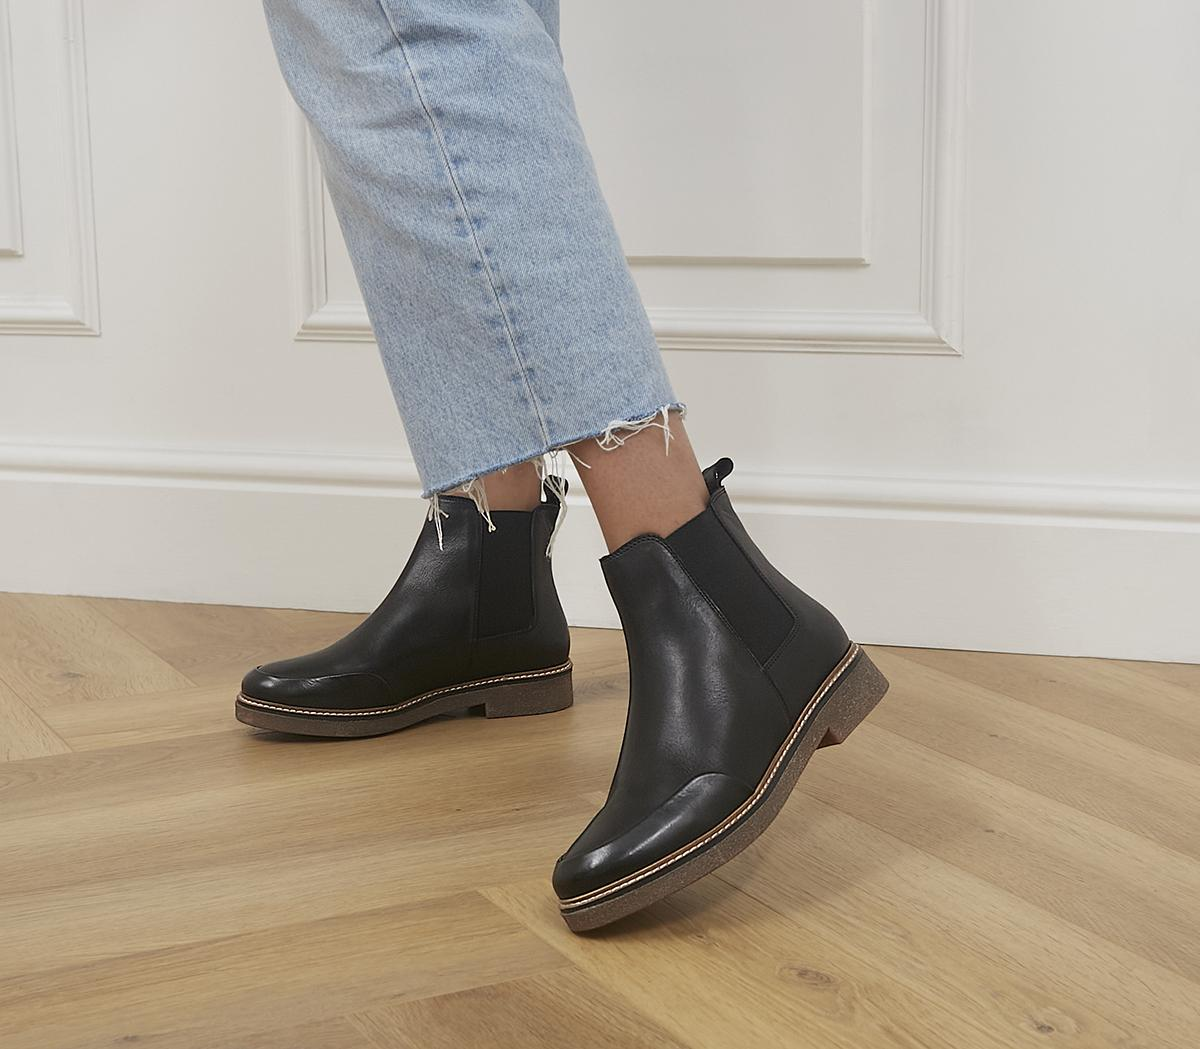 Actioning Crepe Sole Chelsea Boots